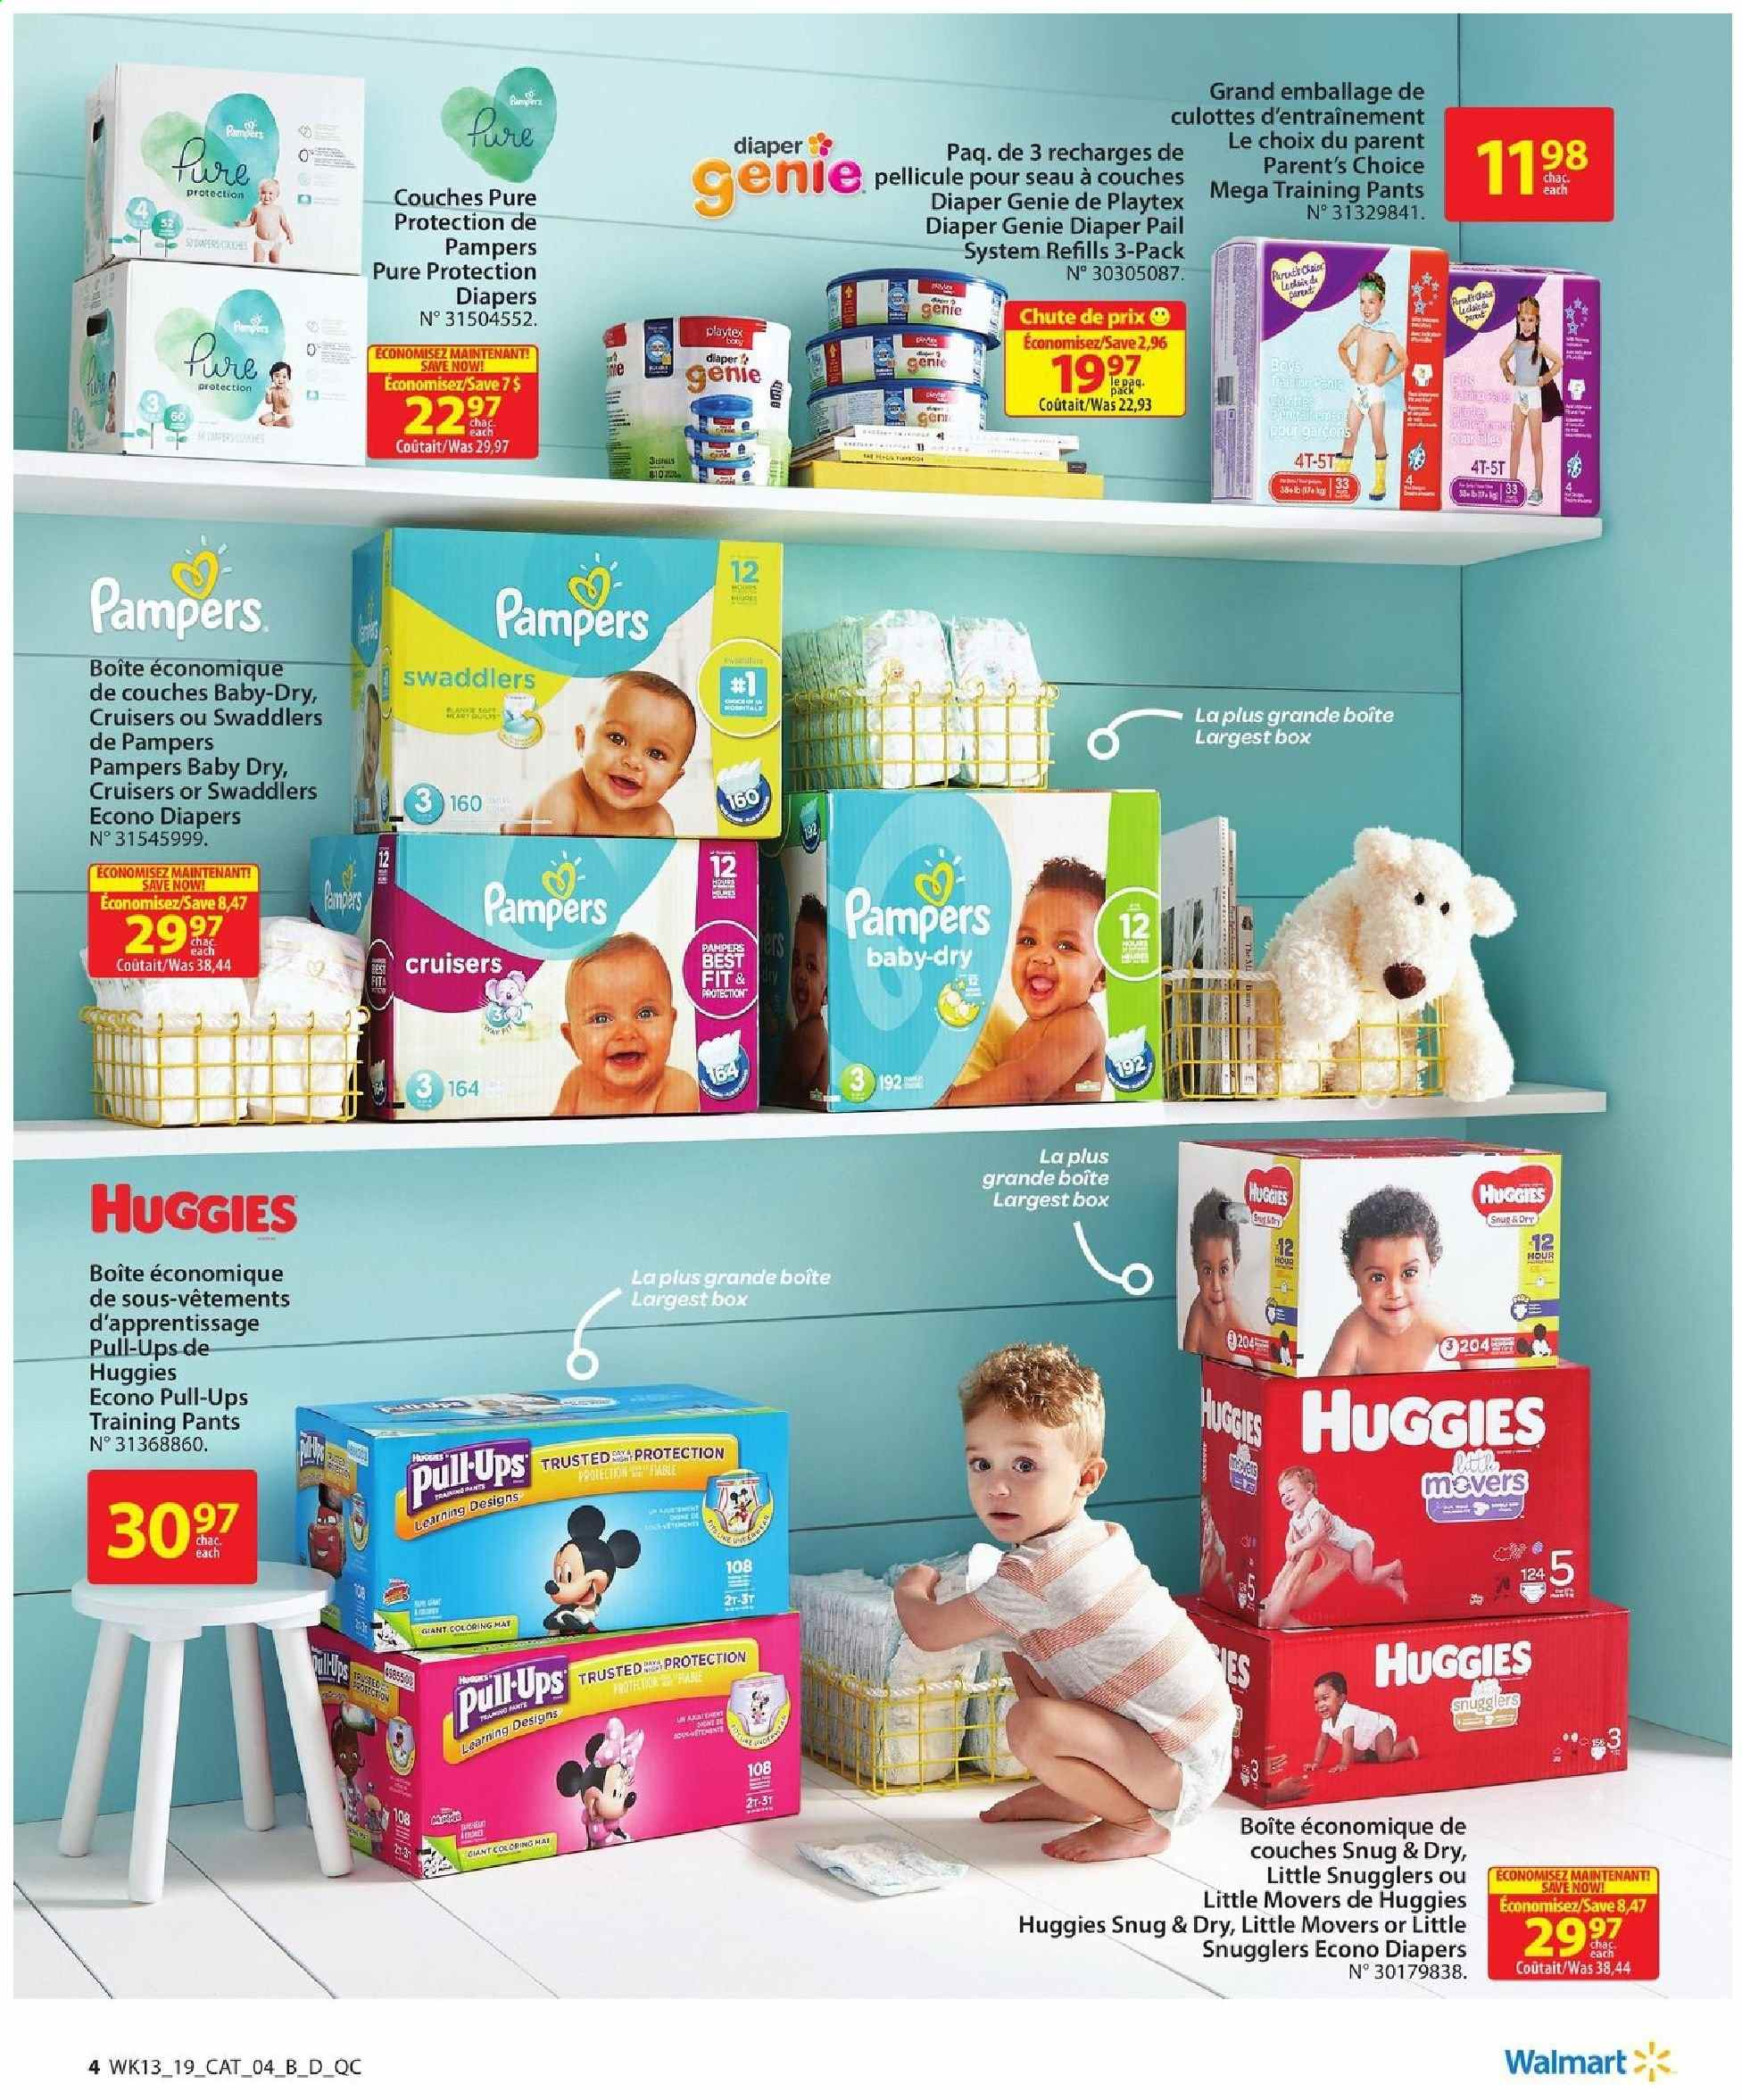 Walmart Flyer  - April 18, 2019 - May 01, 2019. Page 4.